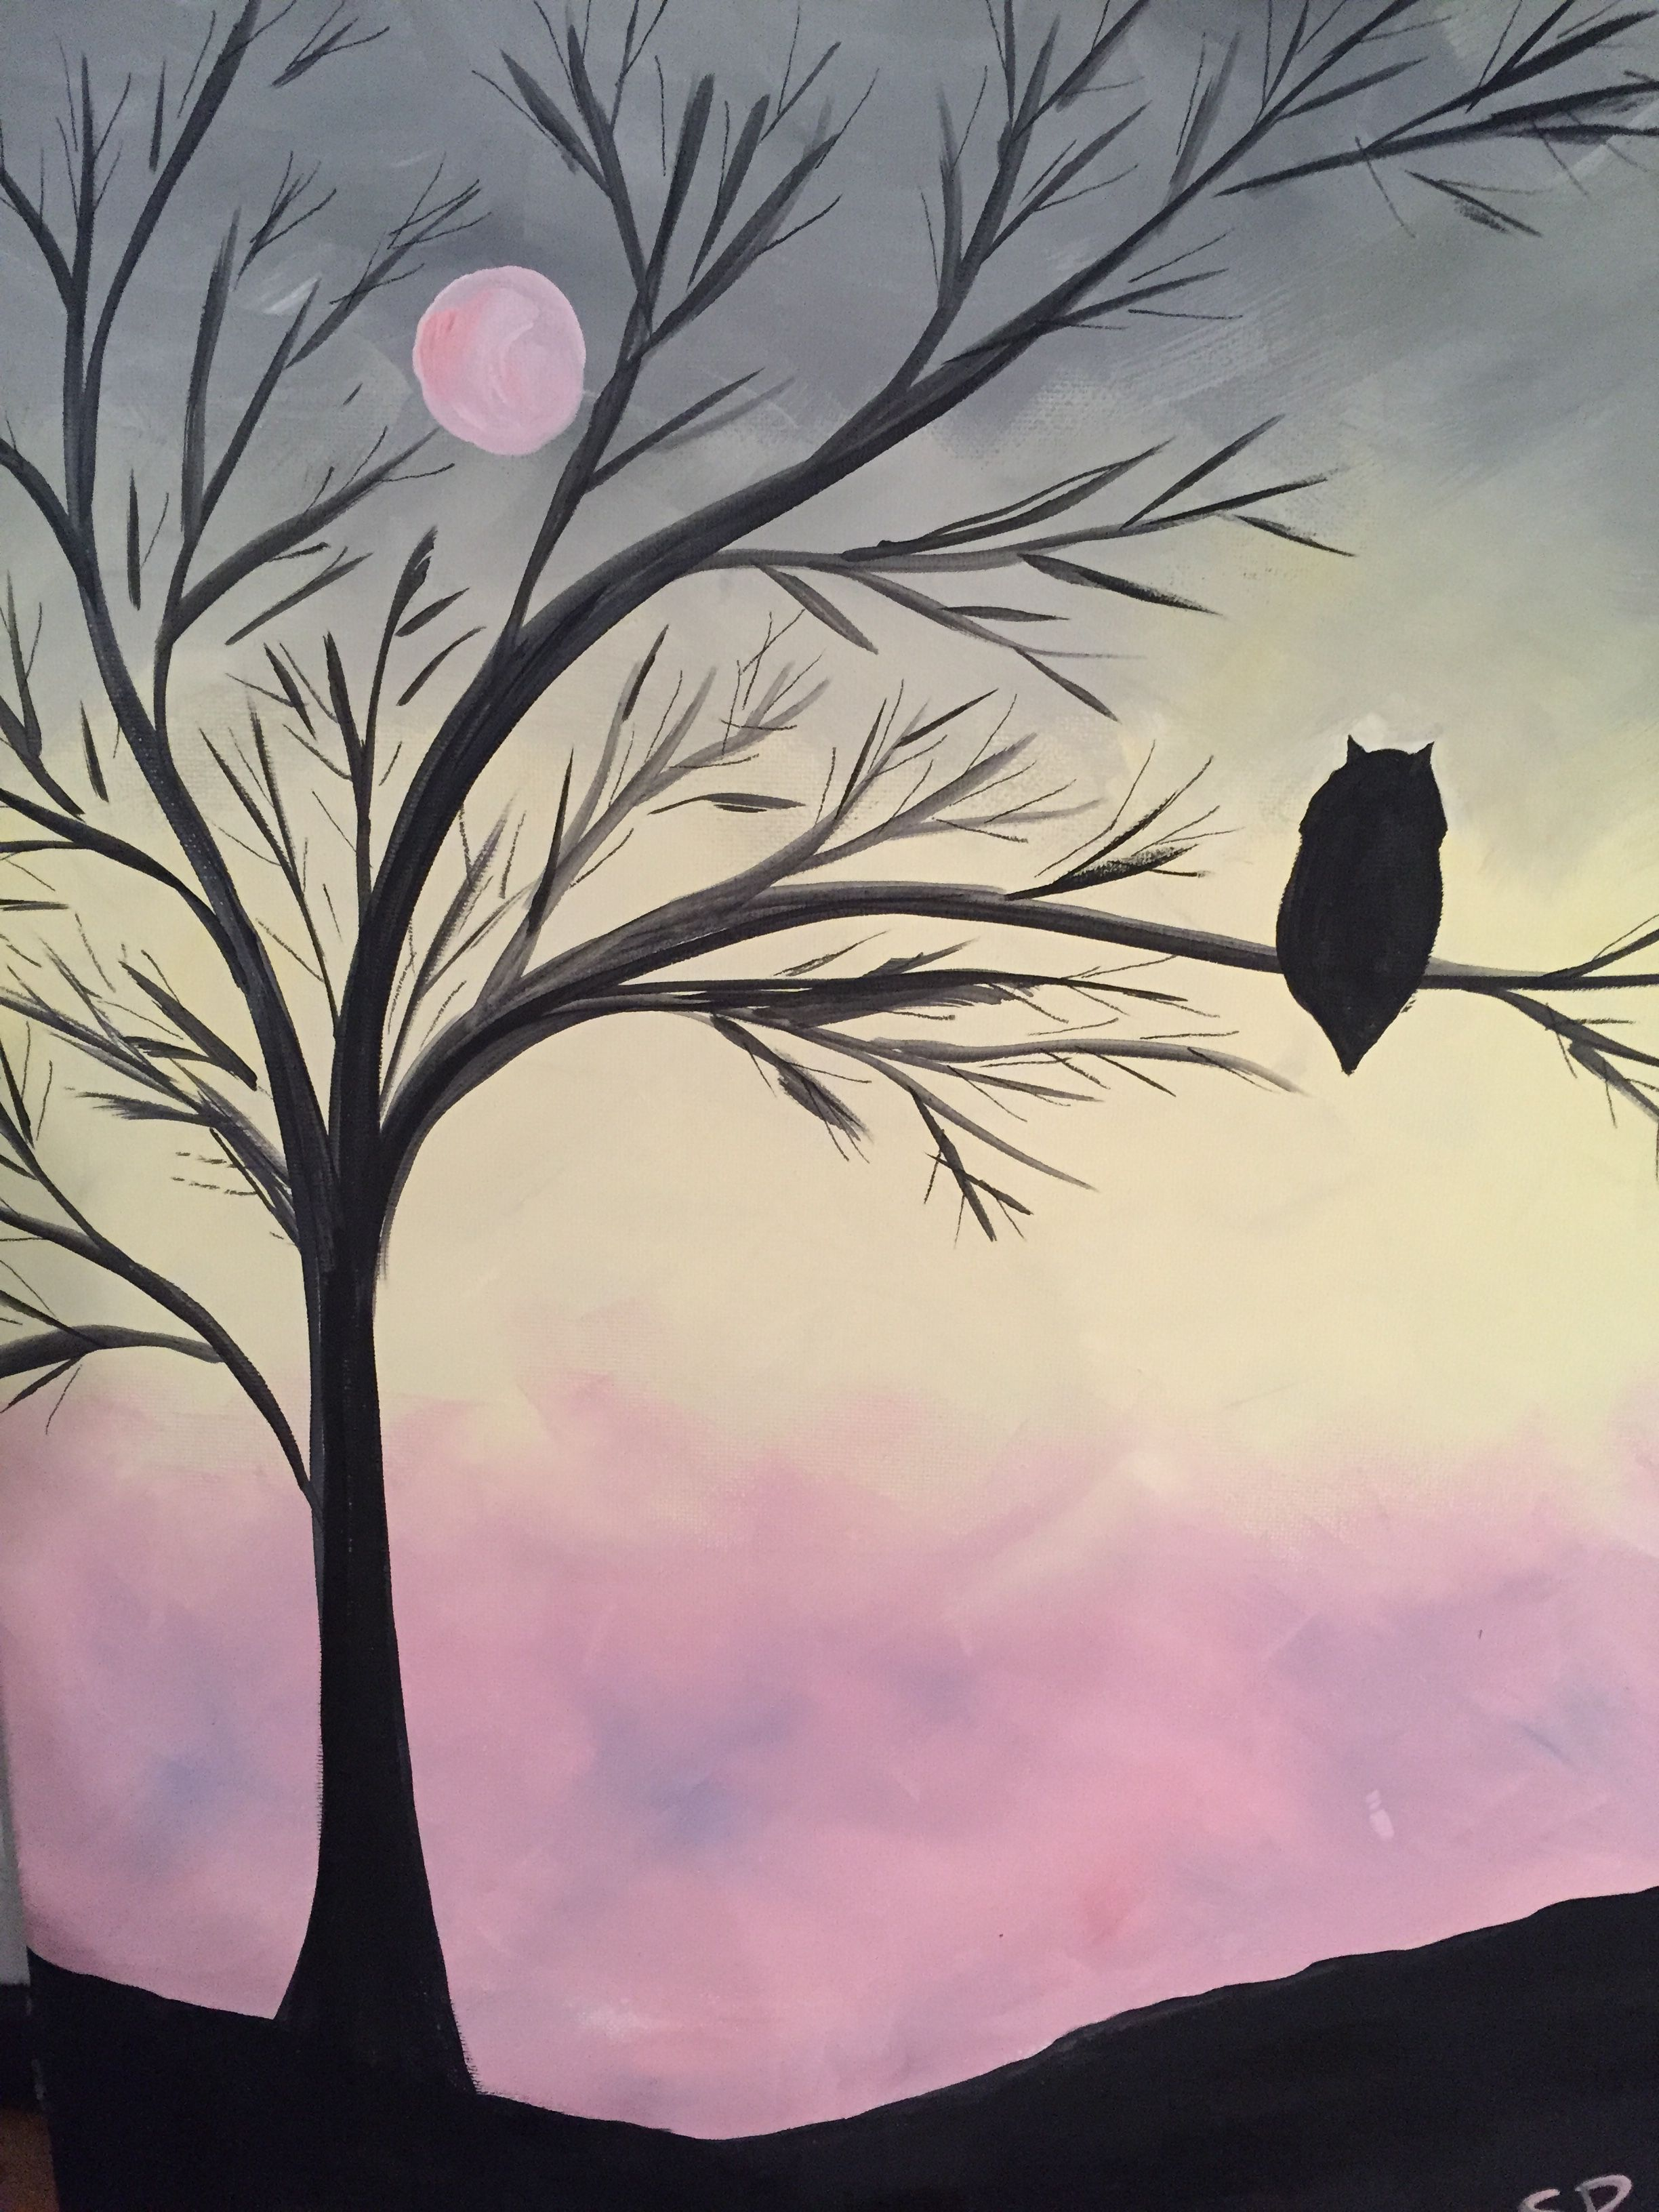 Come out for Paint Night For Grown Ups to an establishment near you. No Experience Needed - we show you how - step by step!